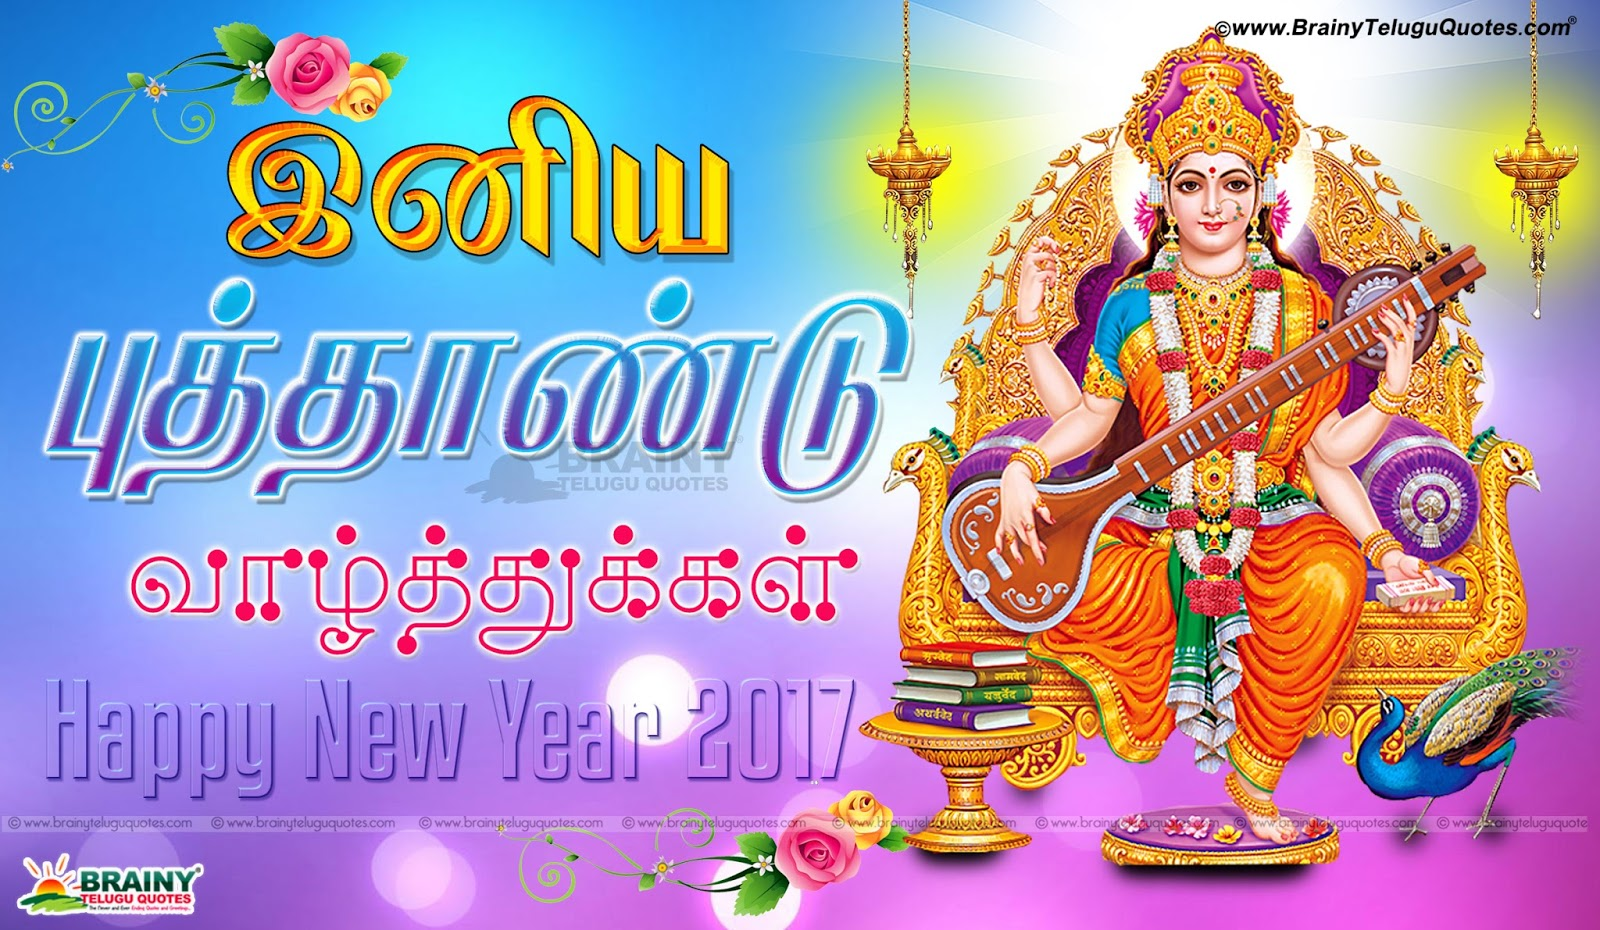 Happy New Year 2017 Hd Wallpapers Greetings in Tamil ...